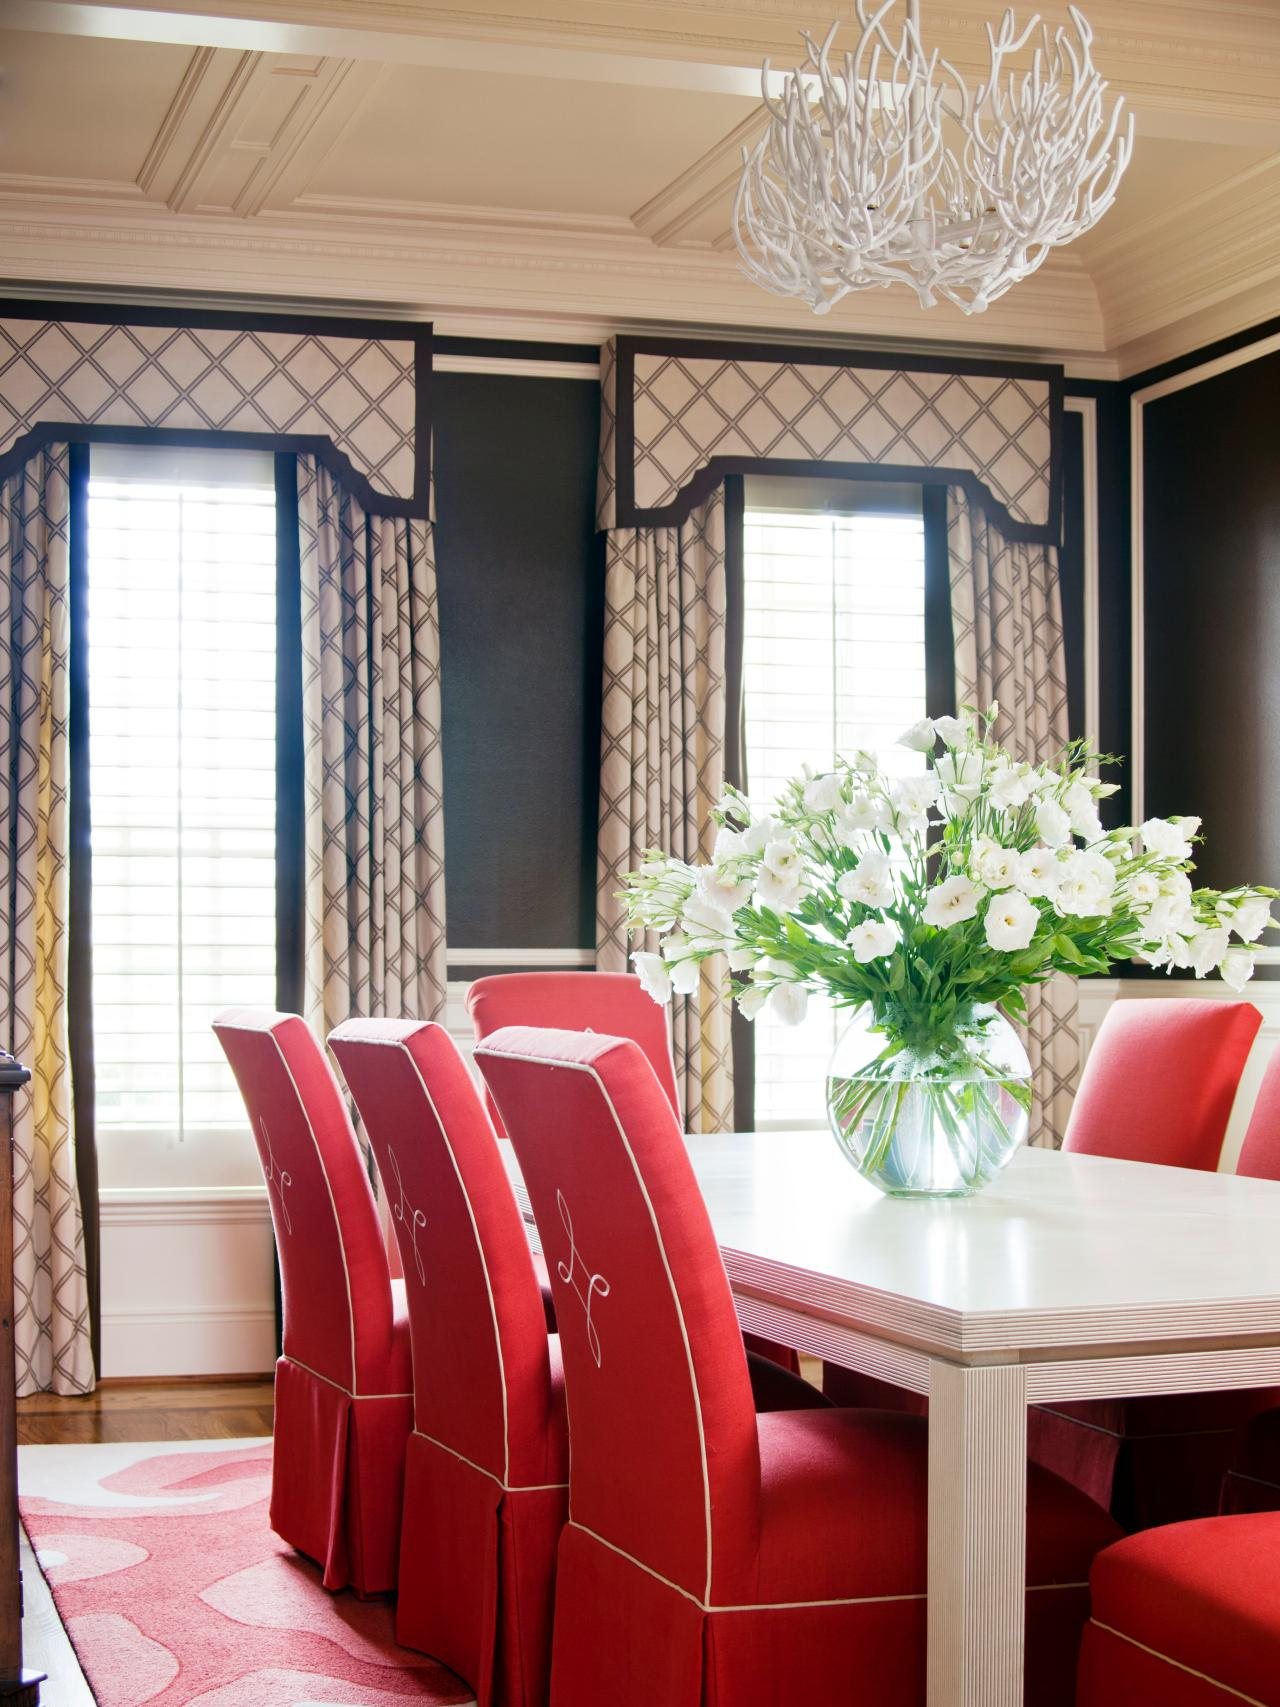 The best window treatments for your style the shade company for What is a window treatment